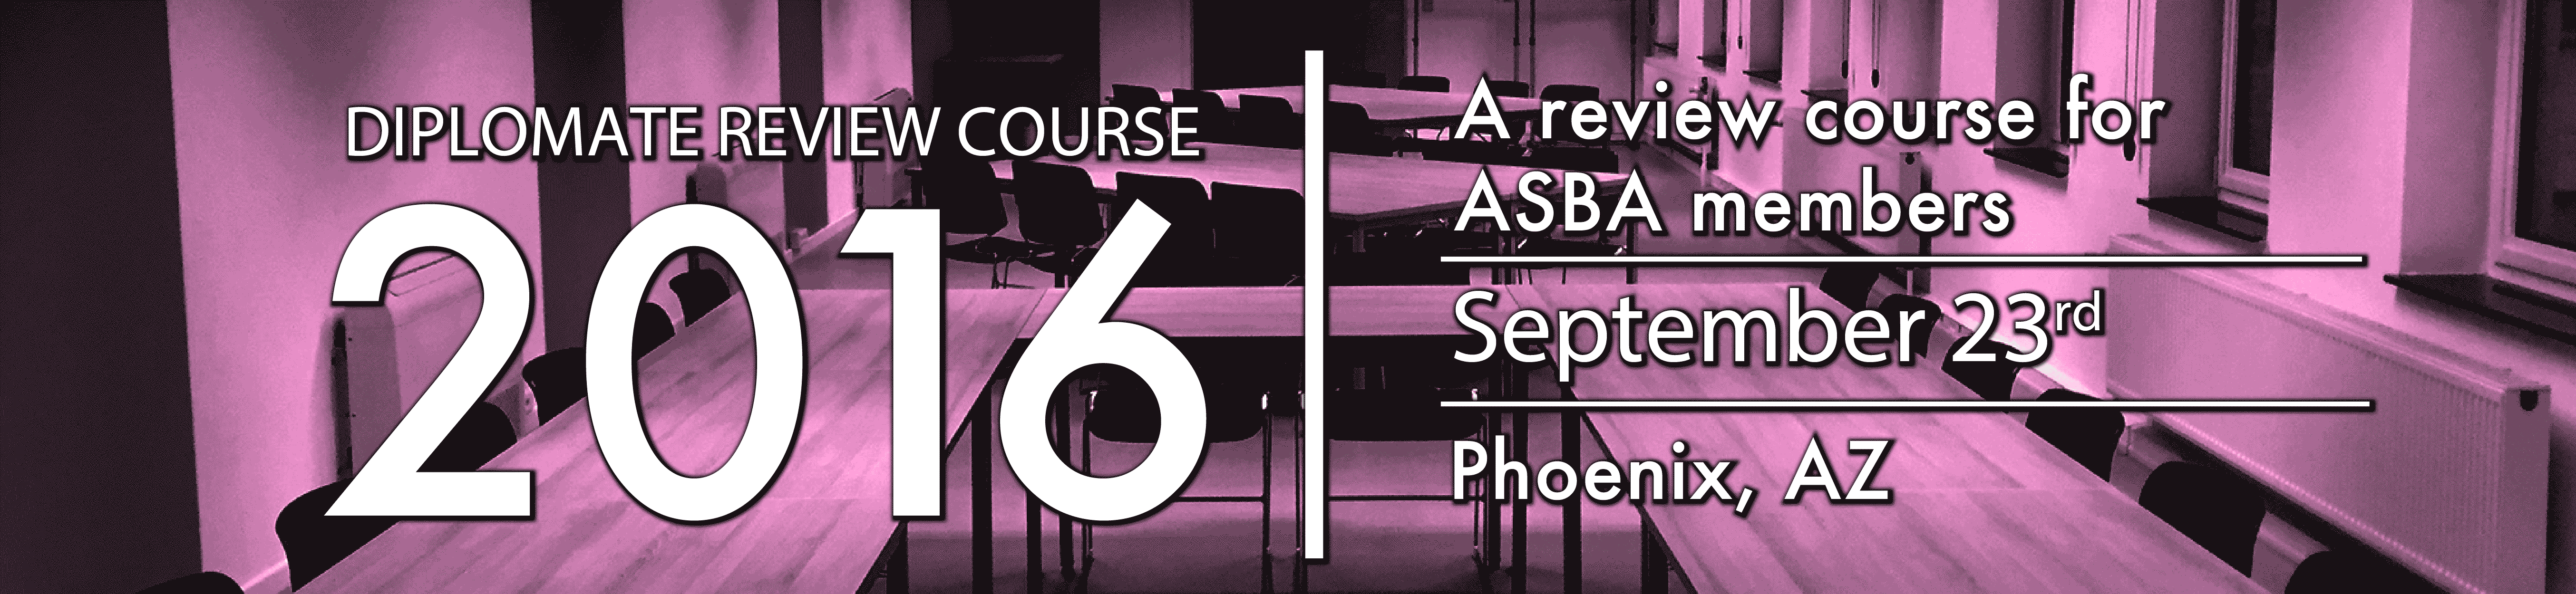 SEPTEMBER ASBA Diplomate Review Course